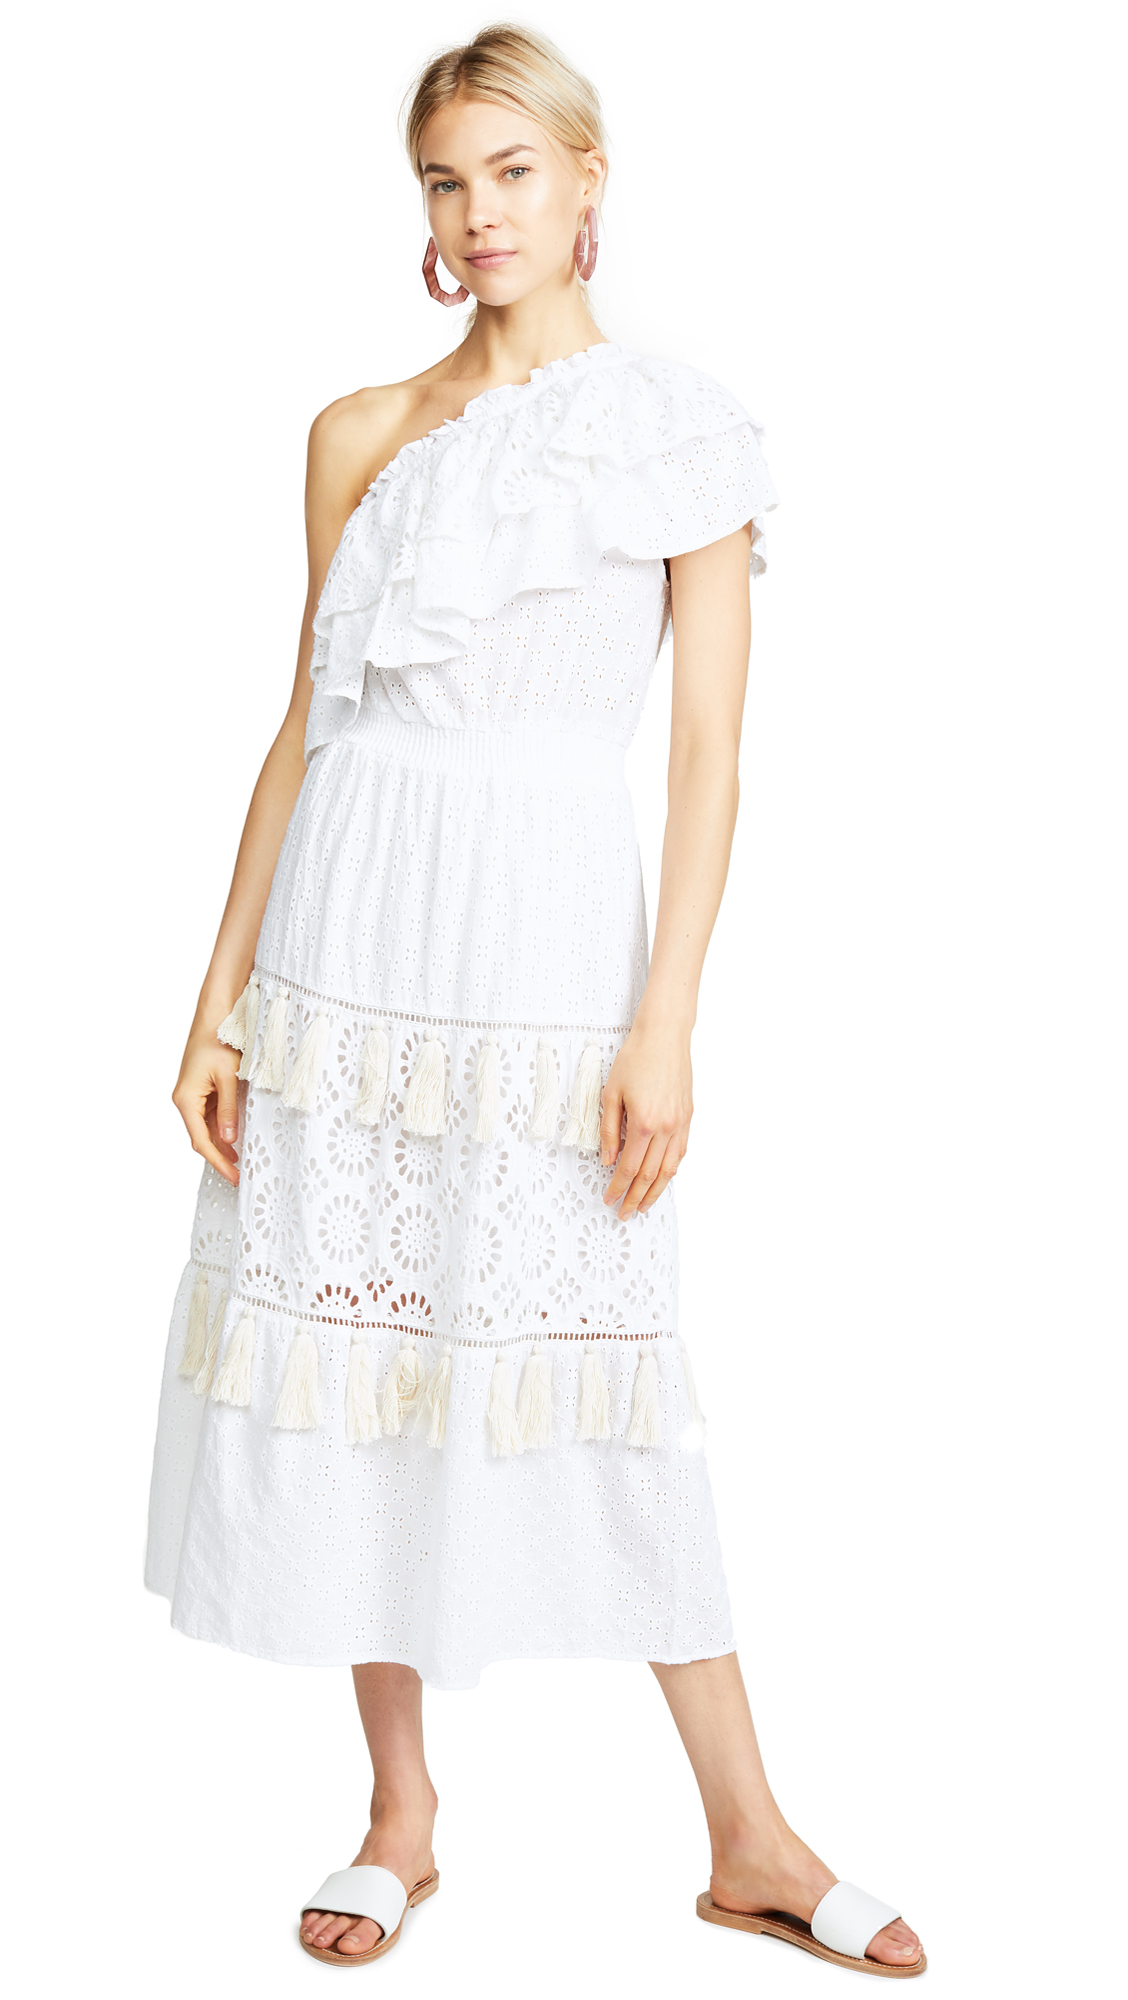 MISA Clea Dress In White